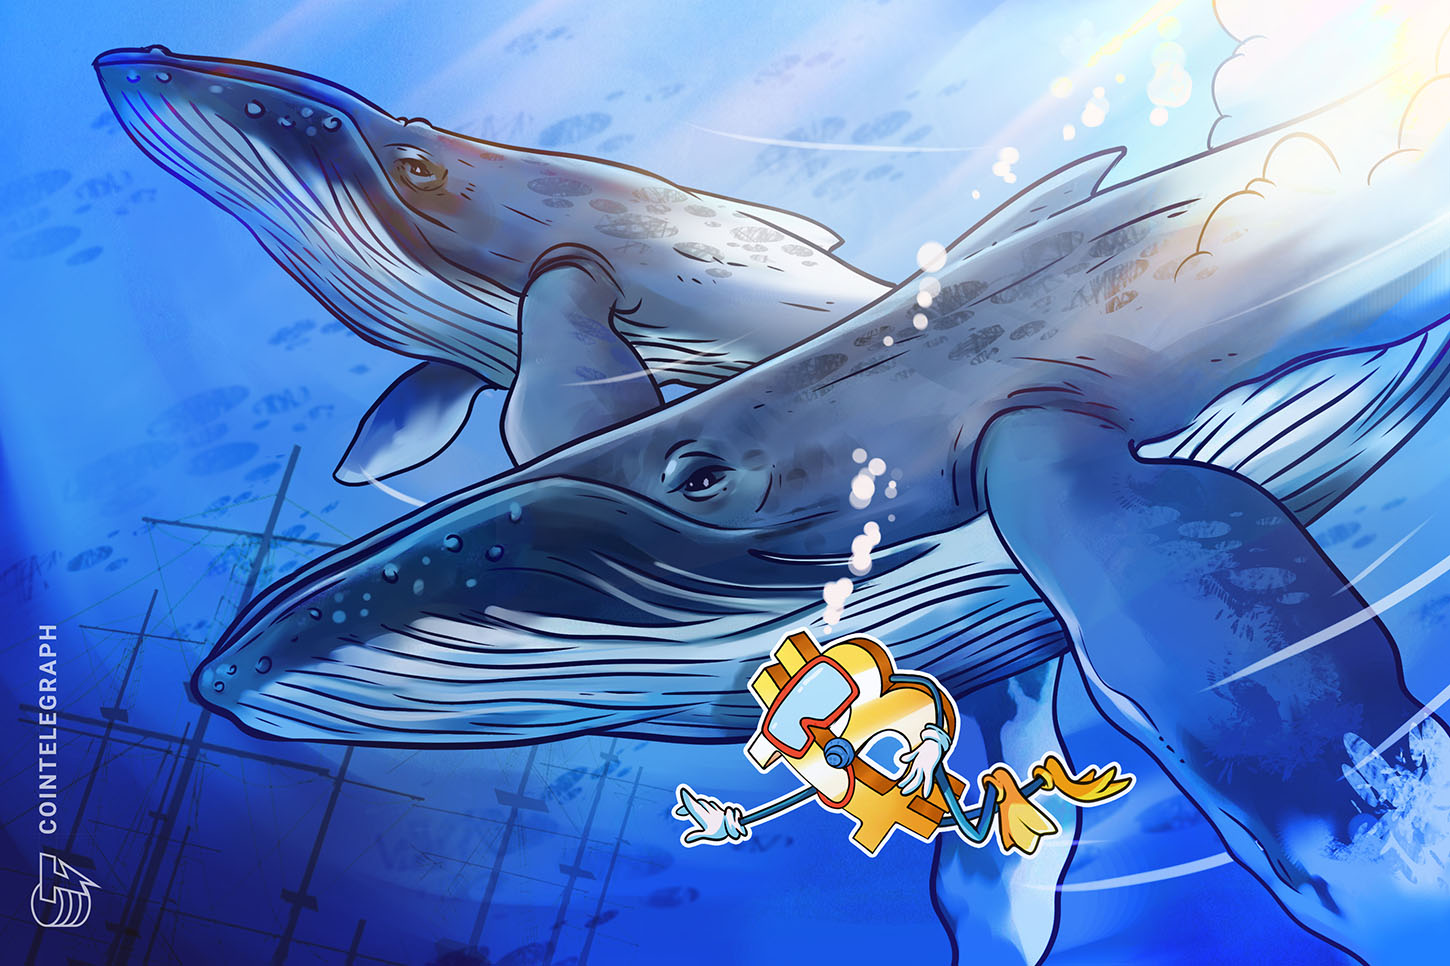 Bitcoin whale clusters pinpoint 3 key levels for BTC price rally to continue